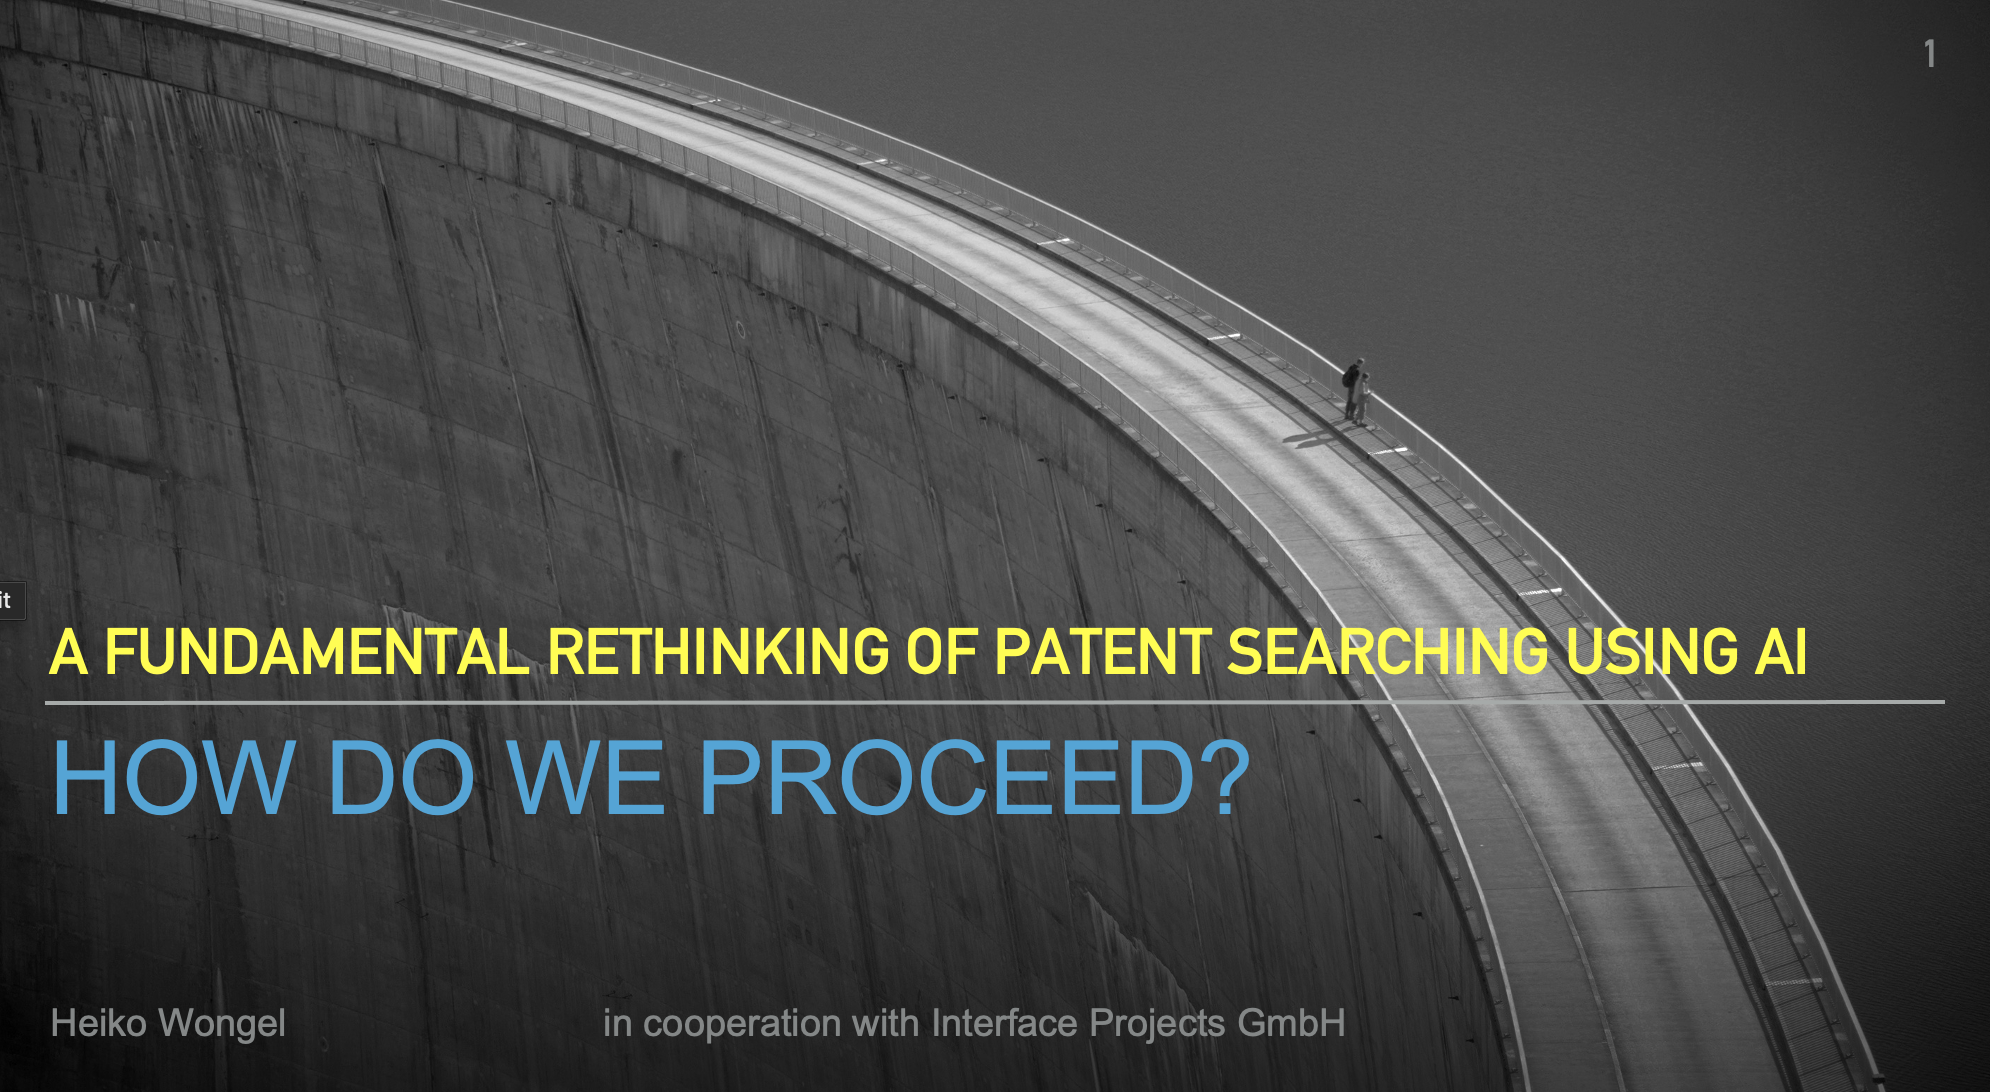 A Fundamental Rethinking of Patent Searching Using AI: How Do We Proceed?